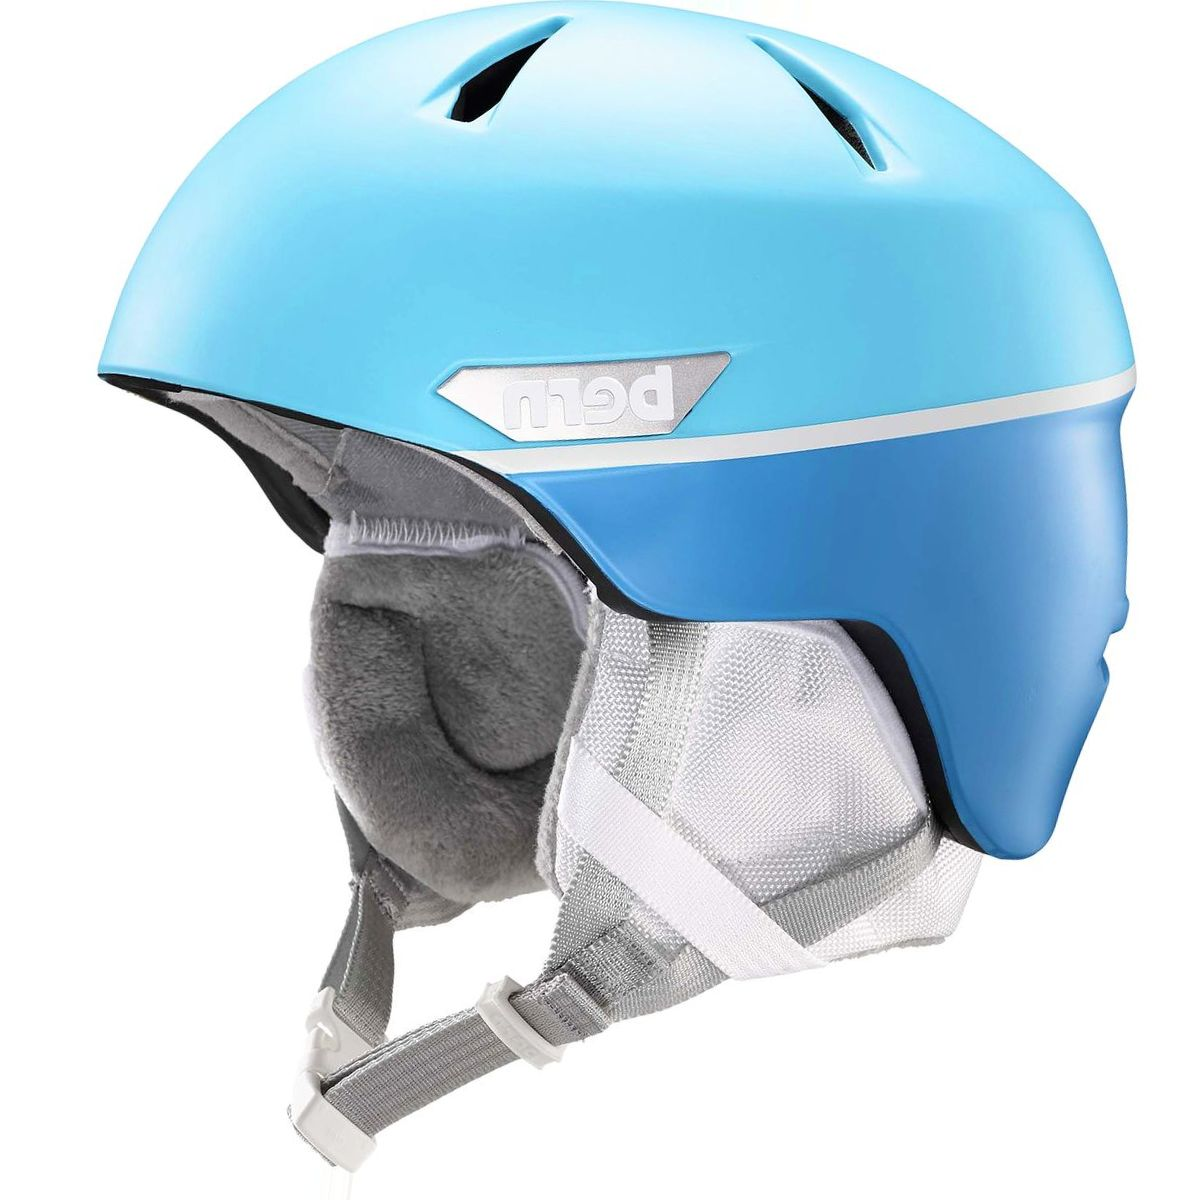 Bern Weston Jr. Helmet - Boys'